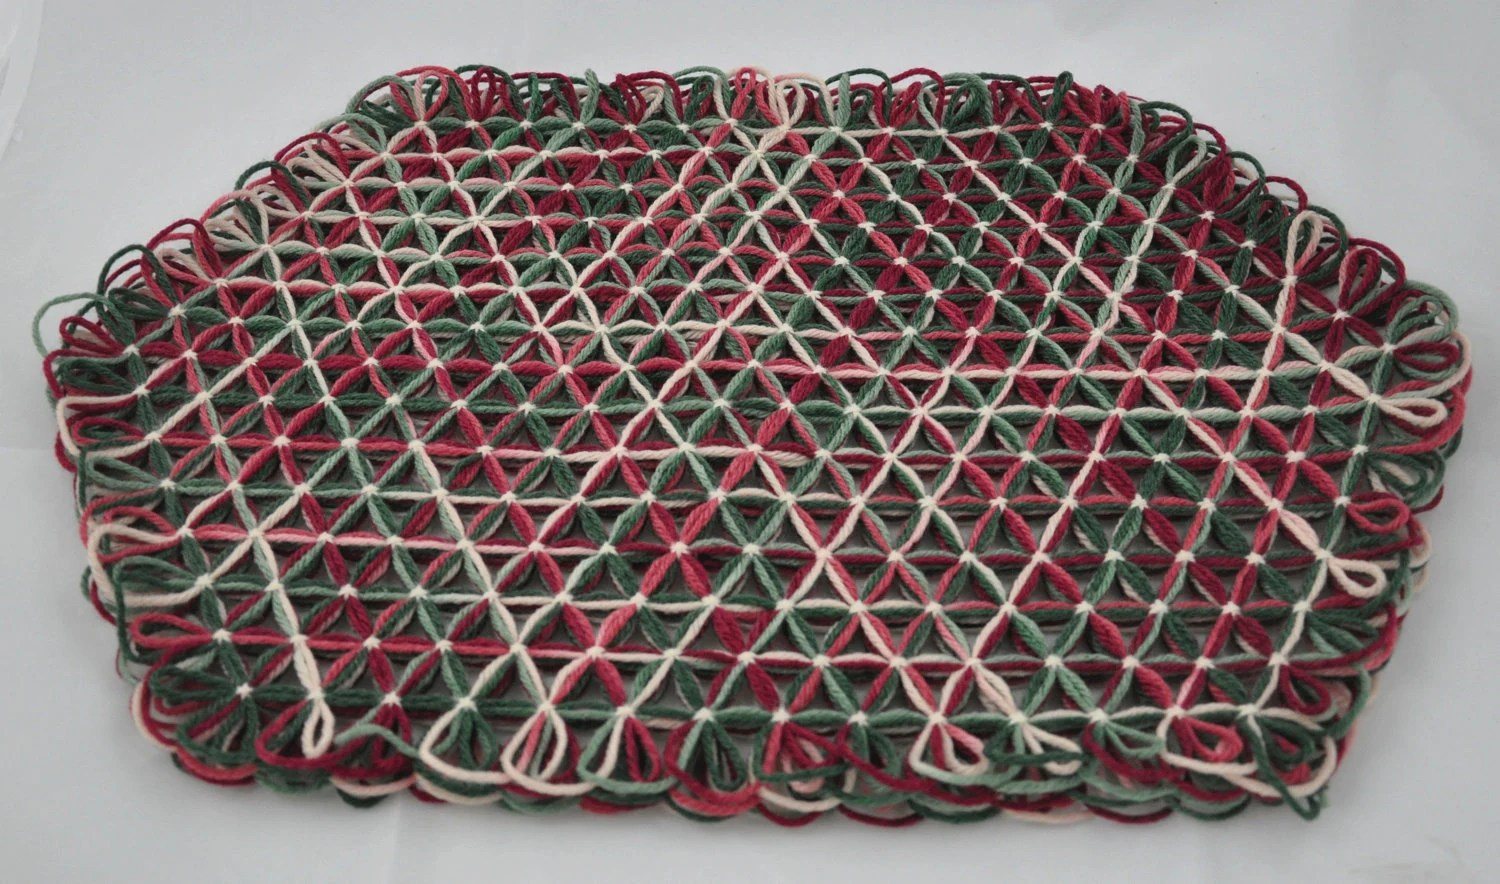 Large Trivet in 4 Layers of Cranberry Green Multicolored Yarn with Cream Ties - Autumn Christmas Colors